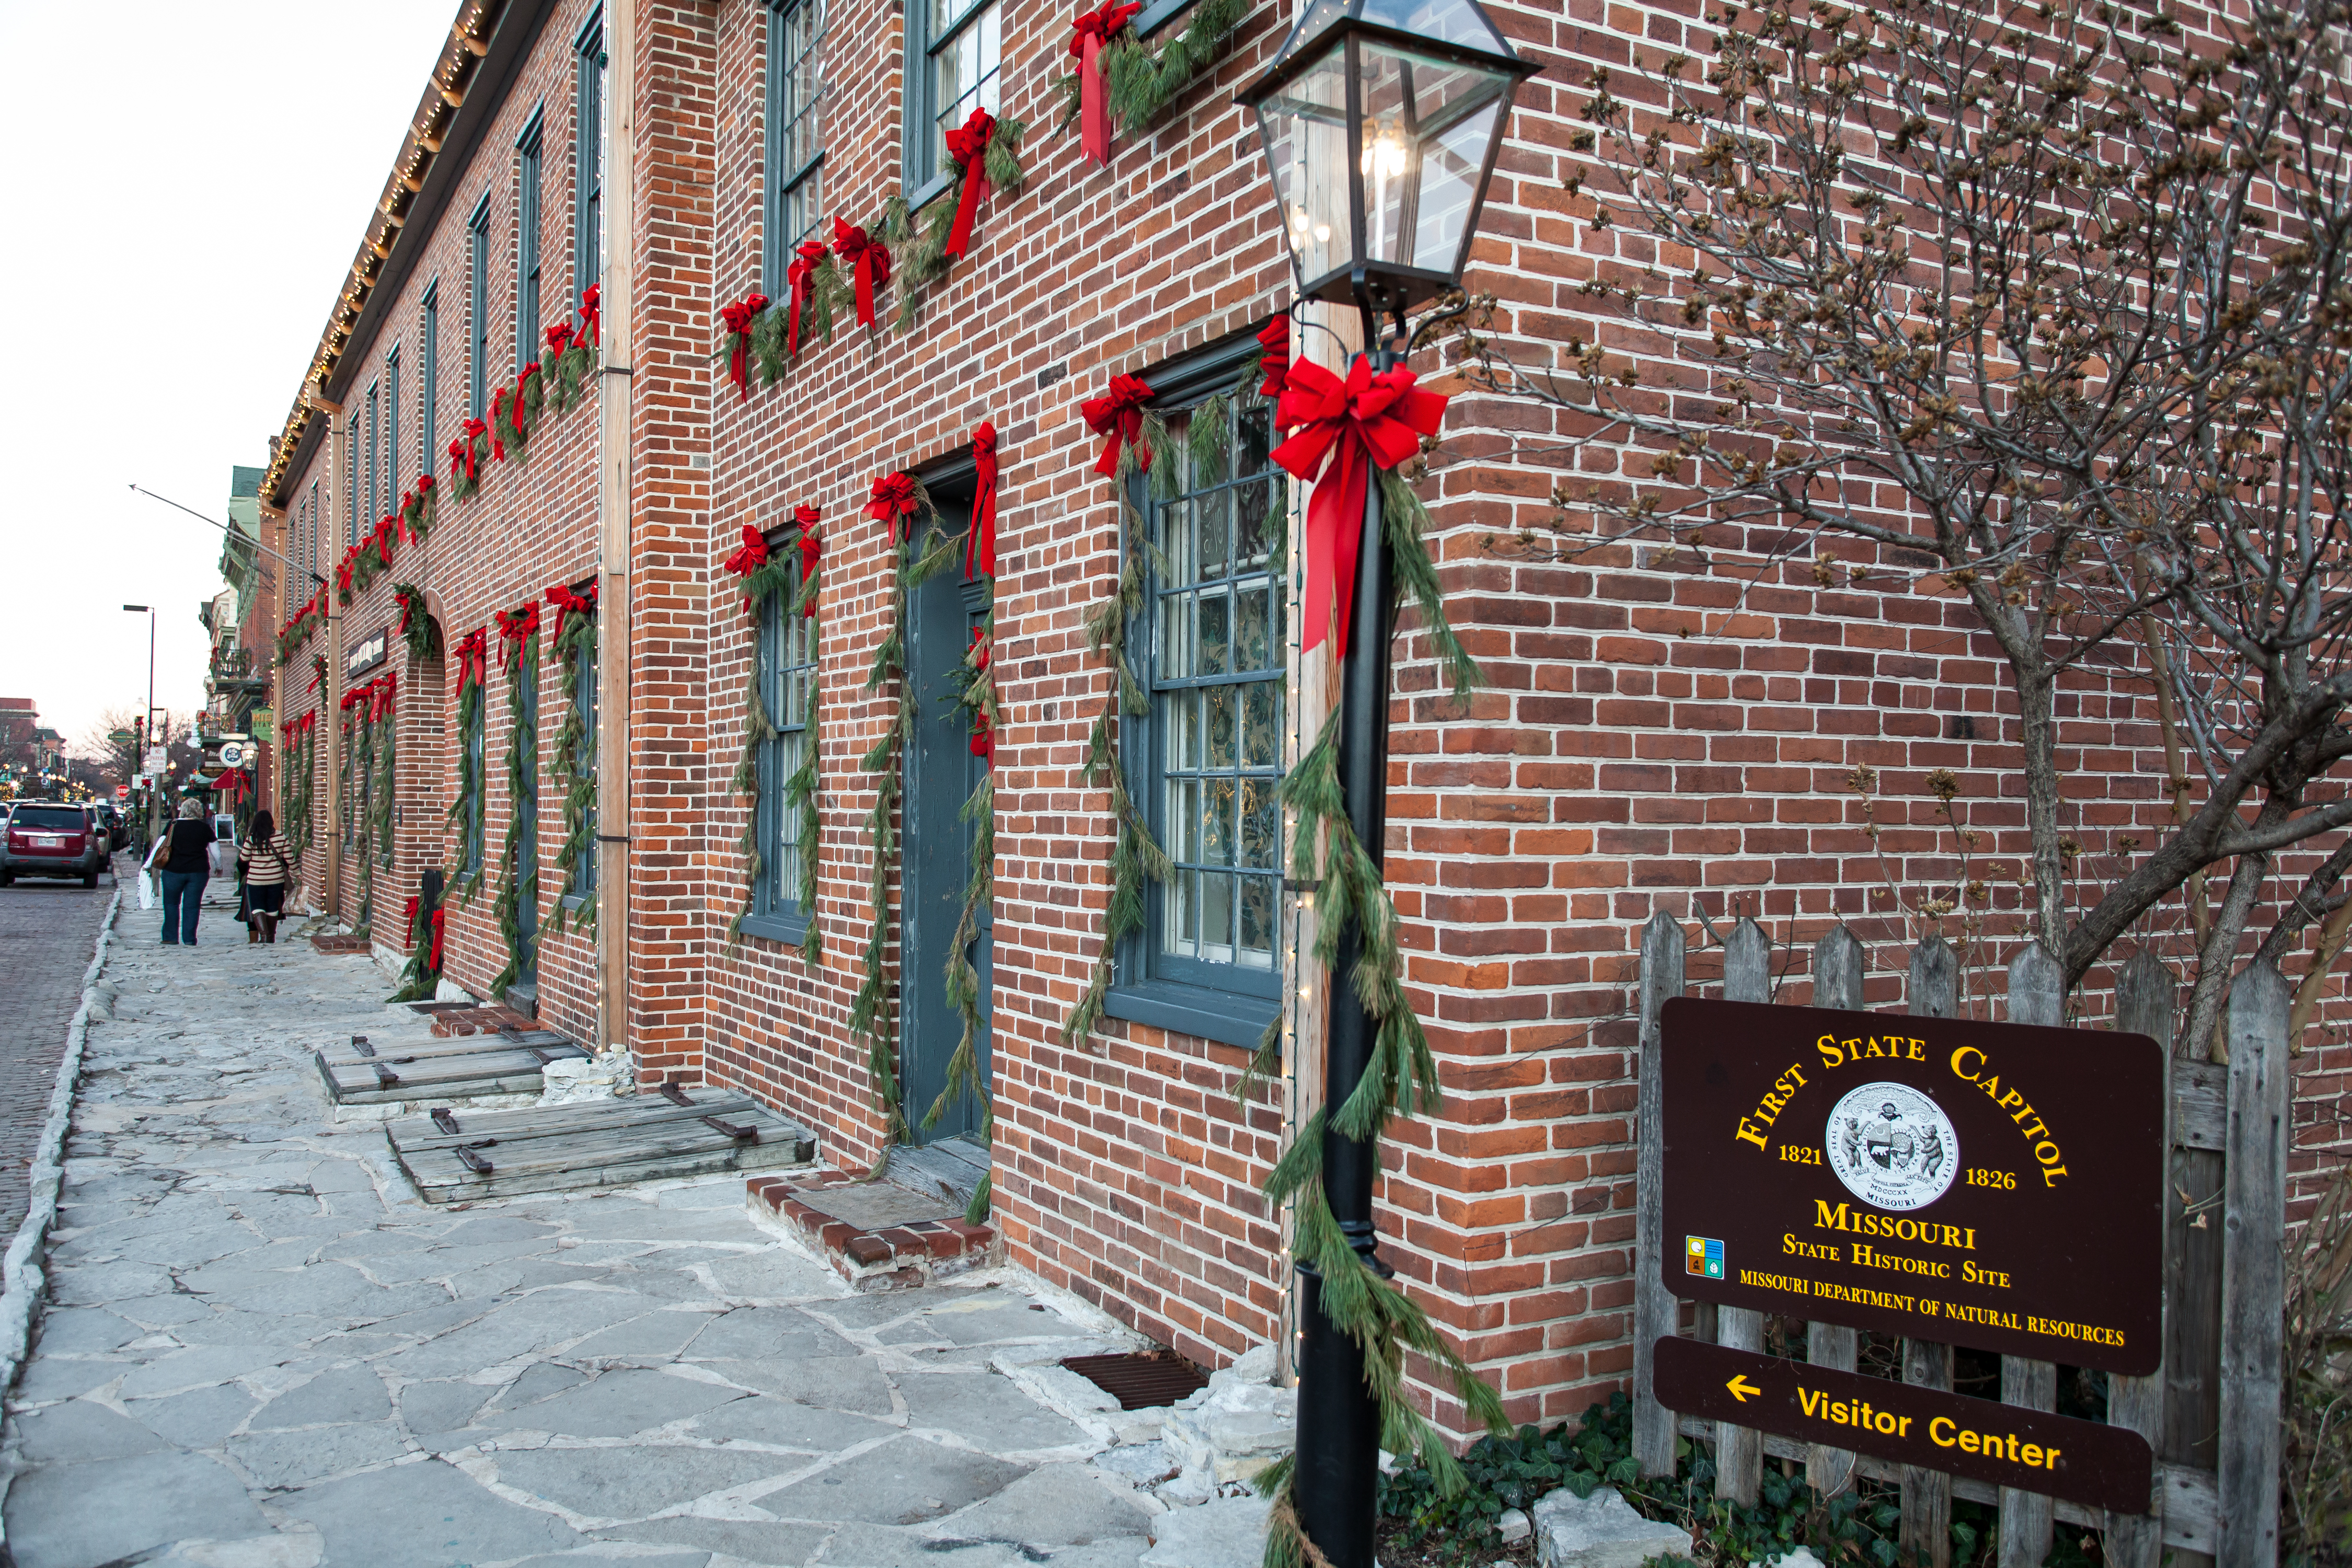 St Charles Christmas 2019 A Christmas Getaway to St. Charles | Hotels & Restaurants